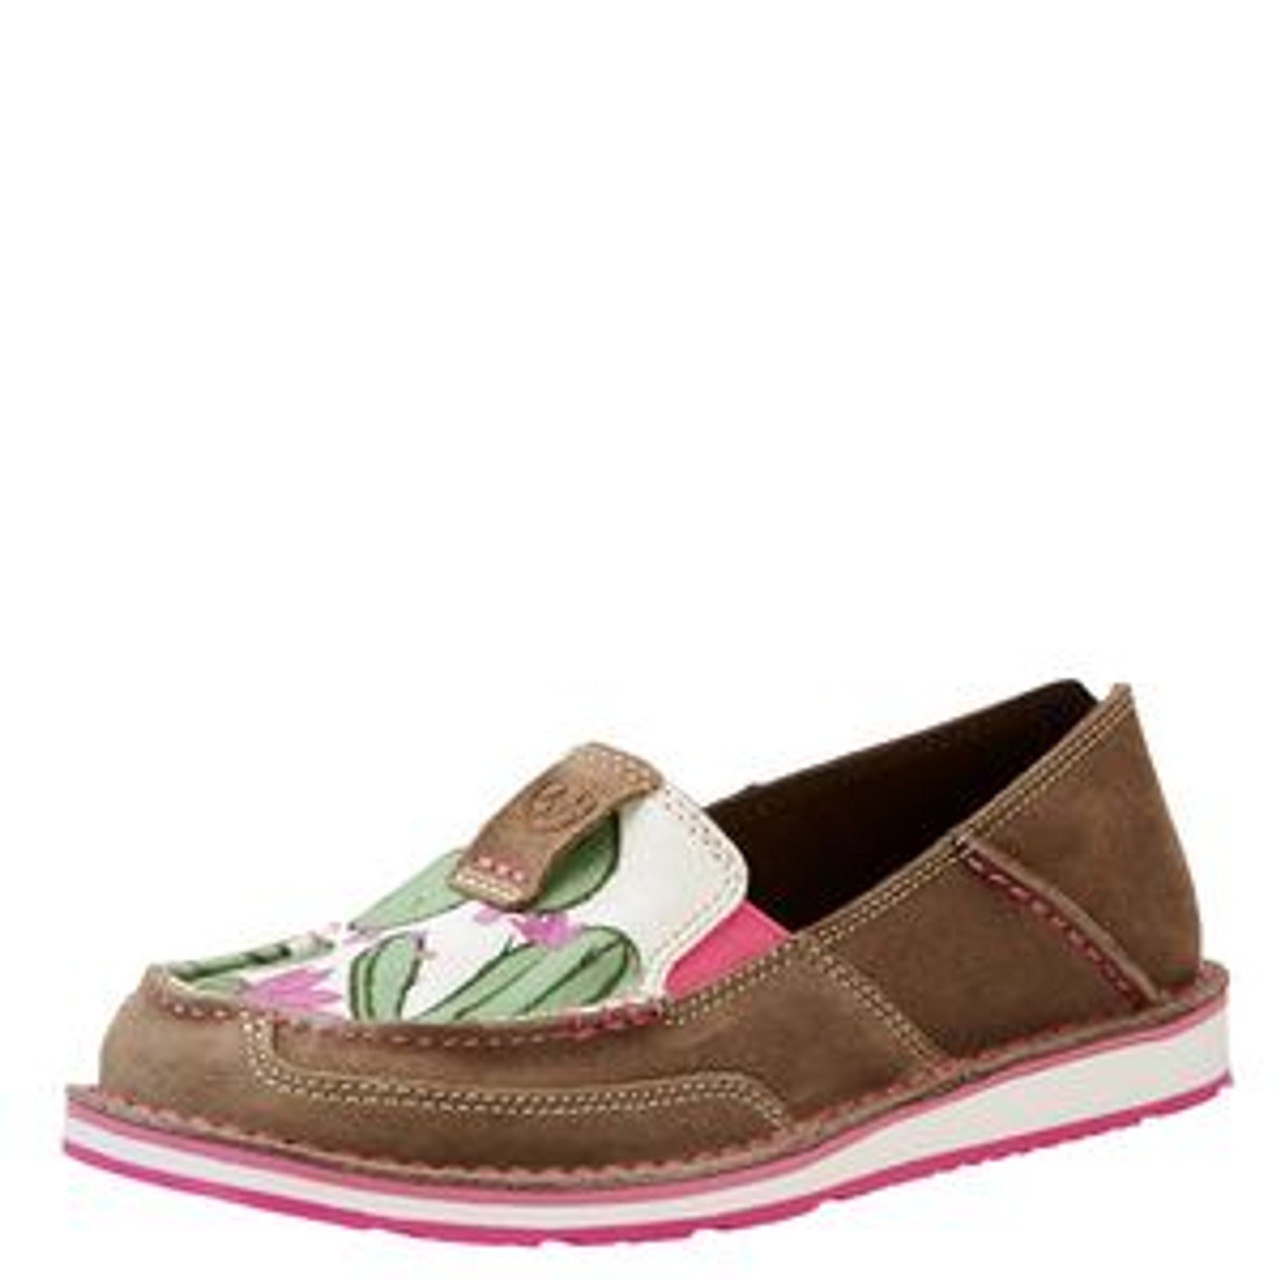 Ariat Cruisers- Ladies Casual Shoes